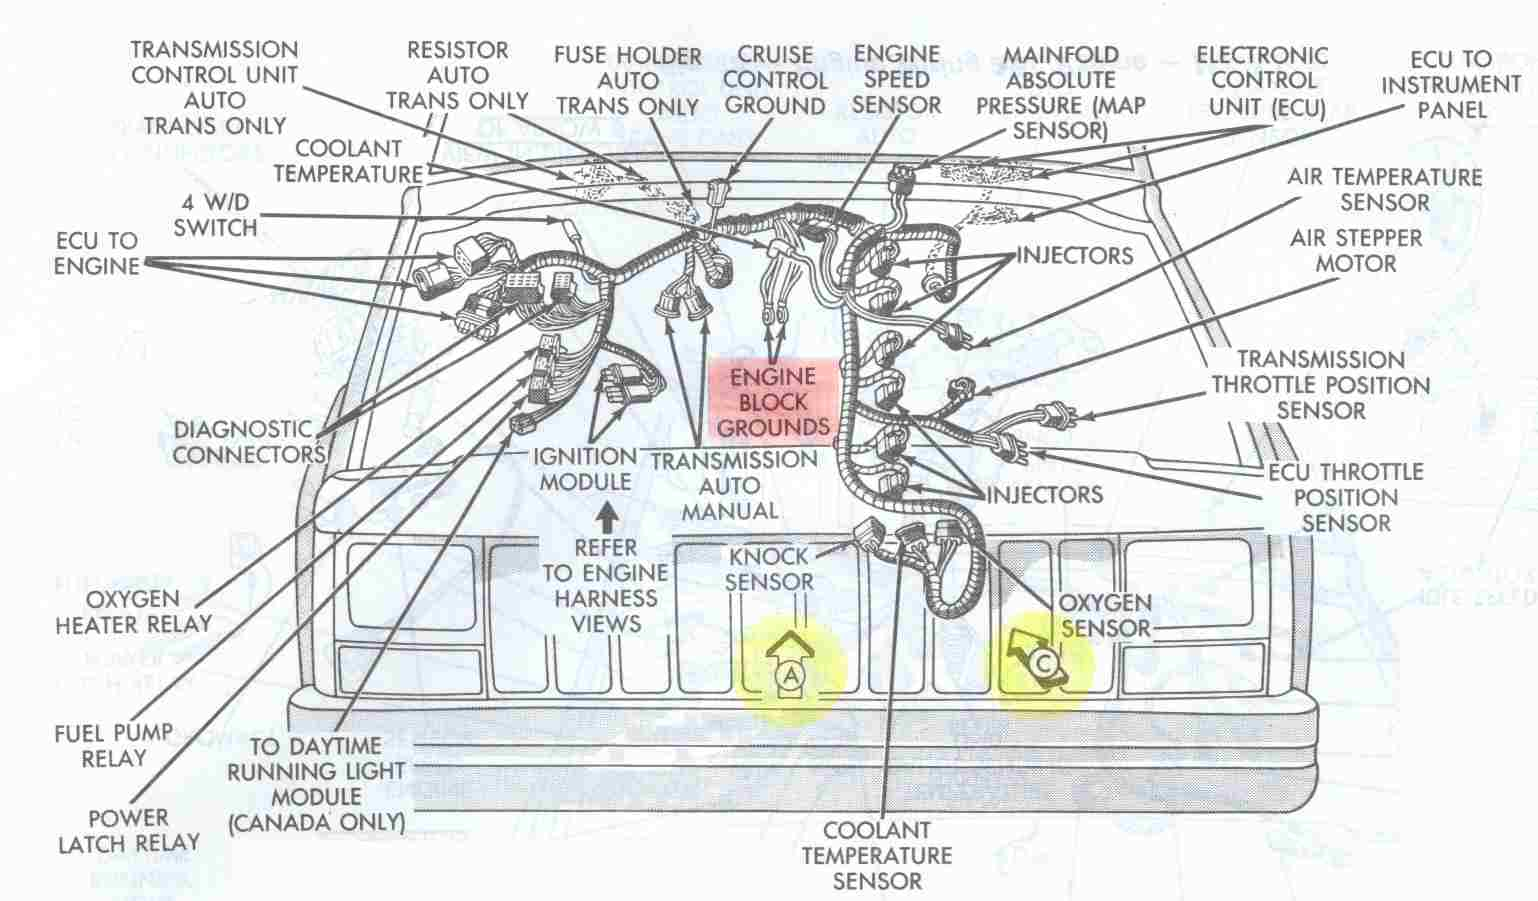 Electrical_Engine_Ground_Points_Overview jeep cherokee electrical diagnosing erratic behavior of engine engine wiring harness for 1997 jeep grand cherokee at bayanpartner.co